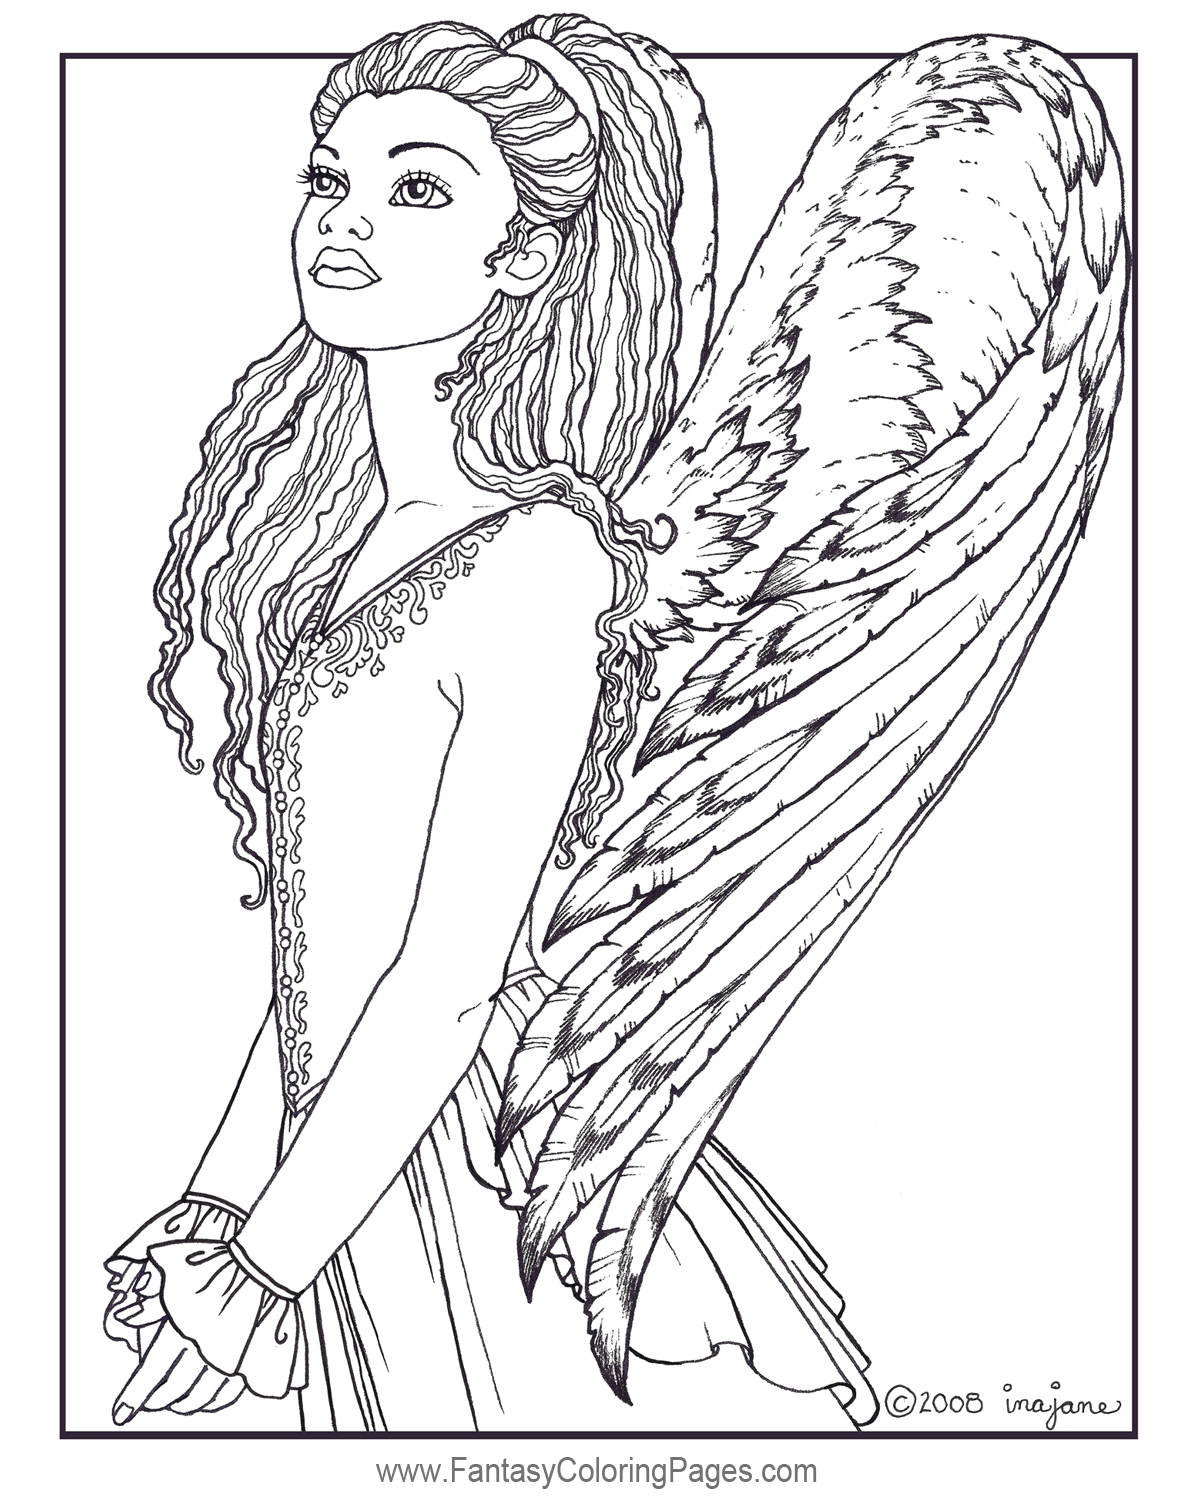 1200x1500 Angels Free Sample Fantasy Coloring Pages